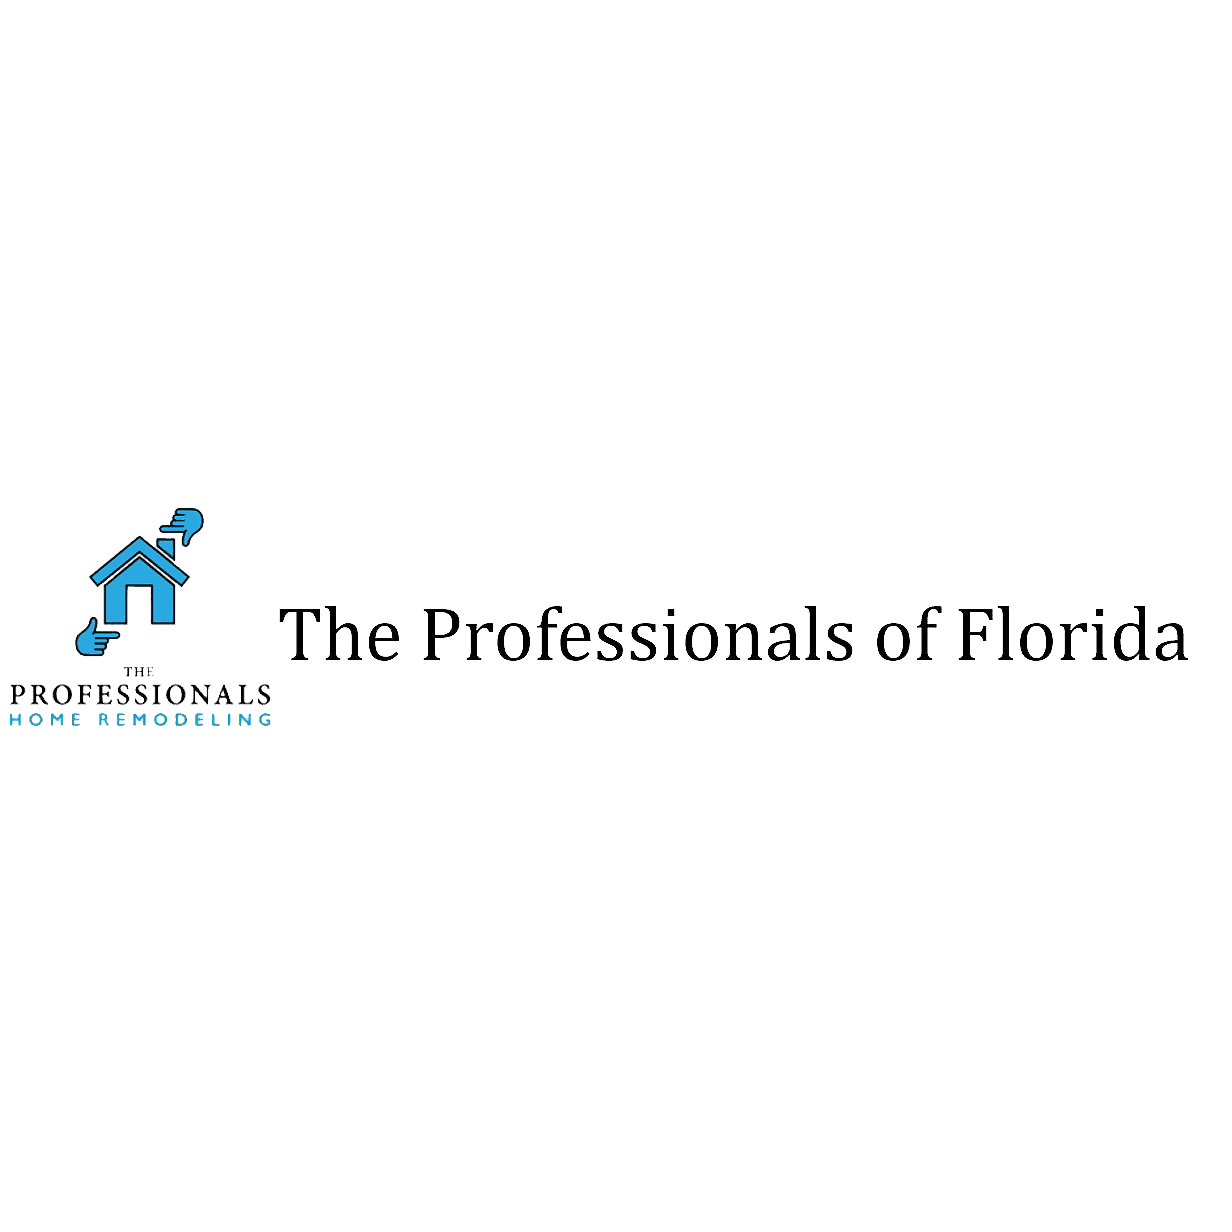 The Professionals of Florida, Corp.